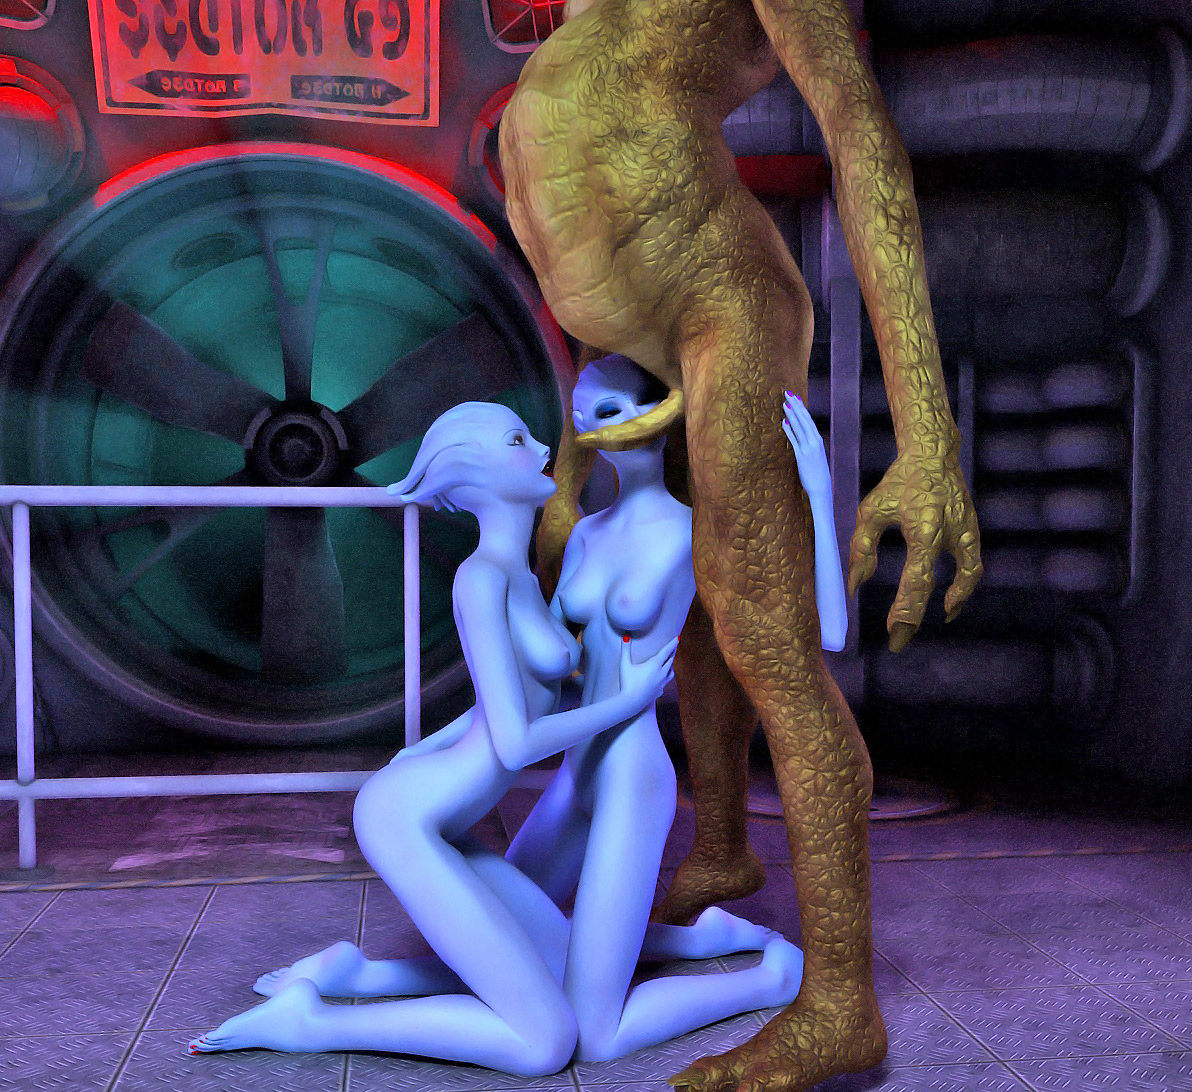 Alien whore hentay babes